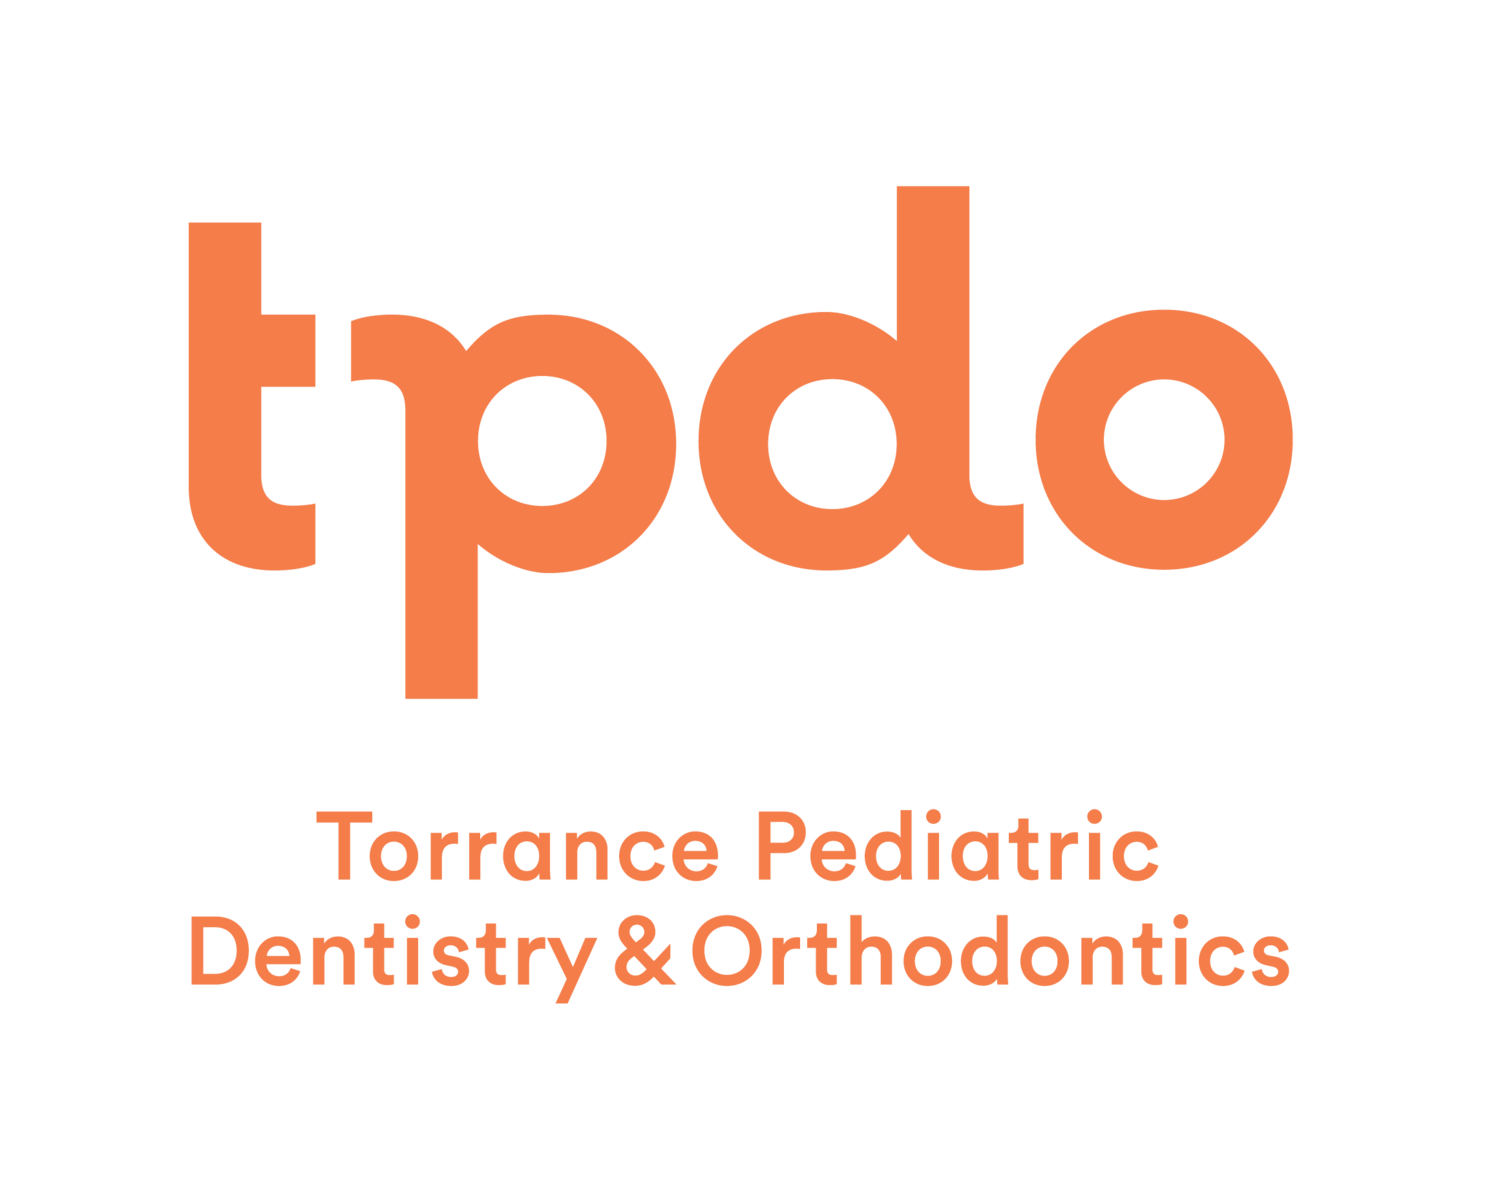 Torrance Pediatric Dentistry + Orthodontics | Torrance, Ca | Children's Dentist